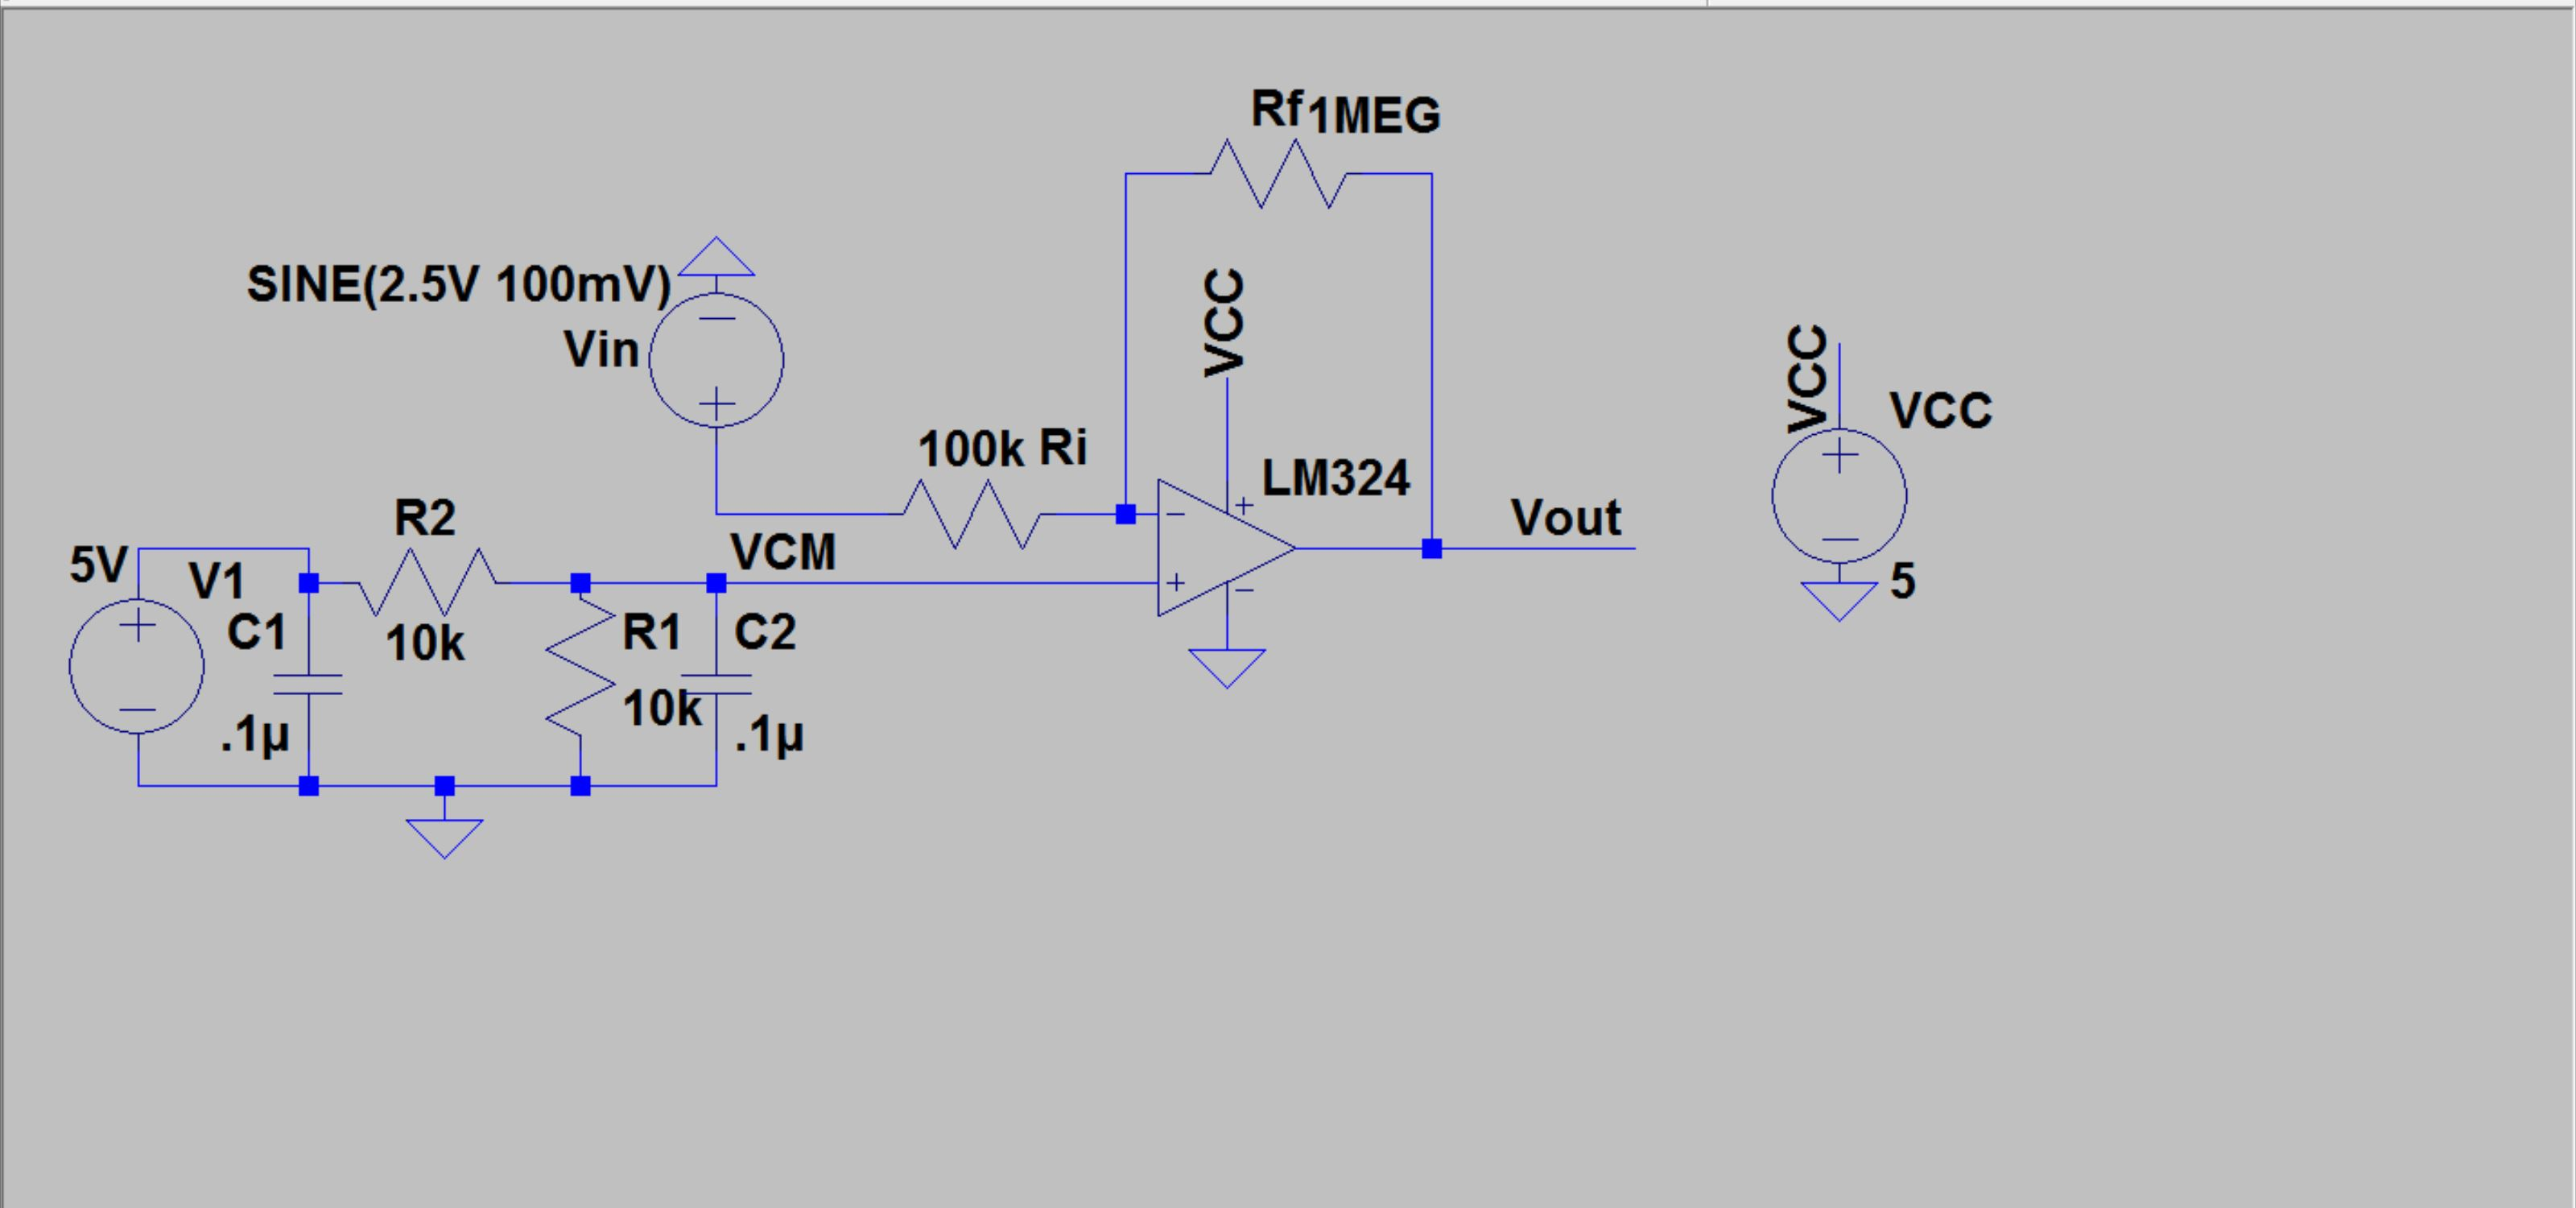 Lab Lm324 Circuit Diagram Schematic For Inverting Op Amp With A Gain Of 10